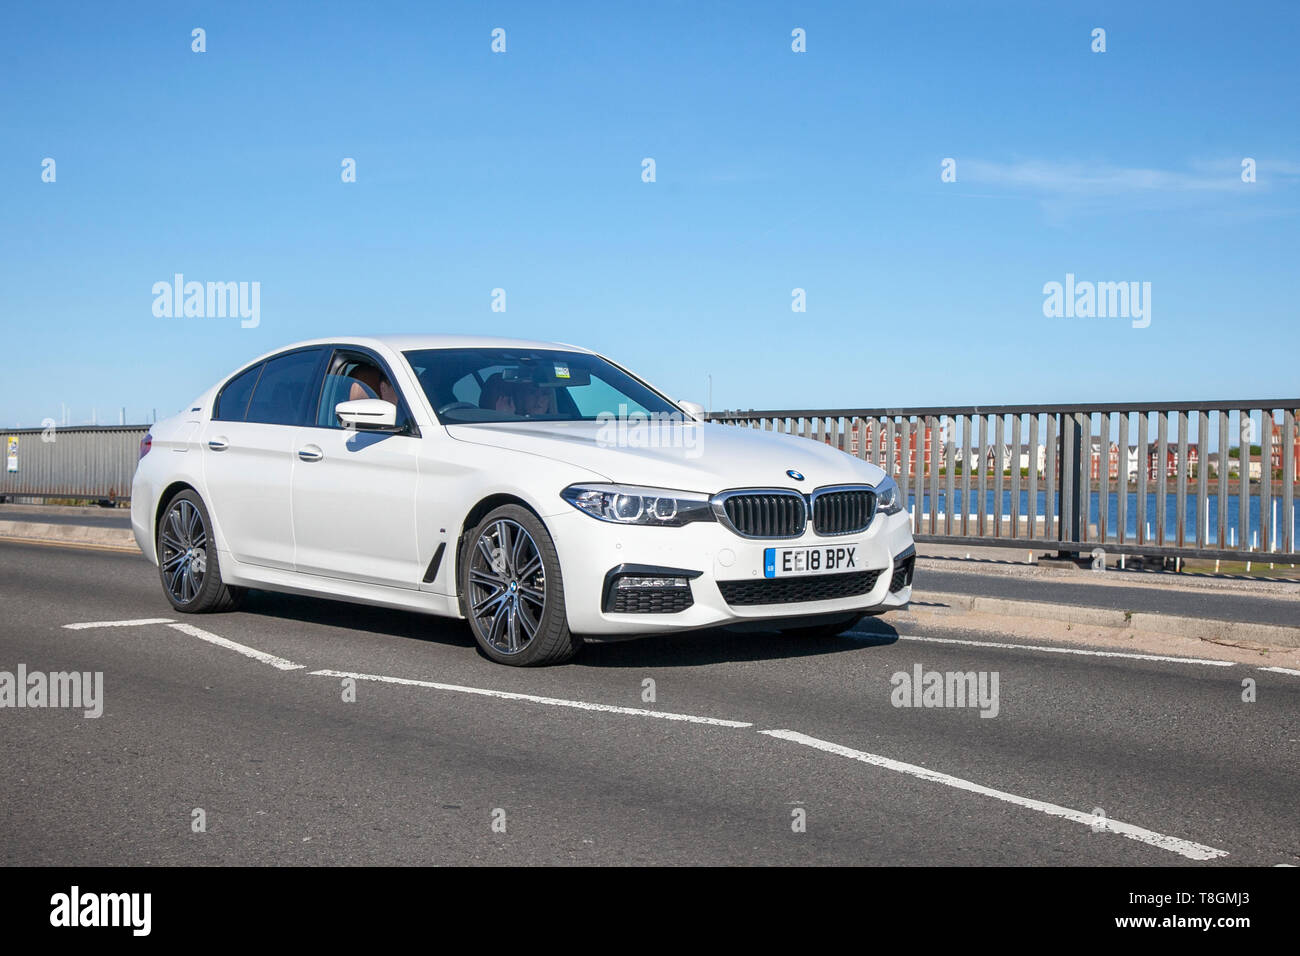 Bmw M Immagini & Bmw M Fotos Stock Alamy